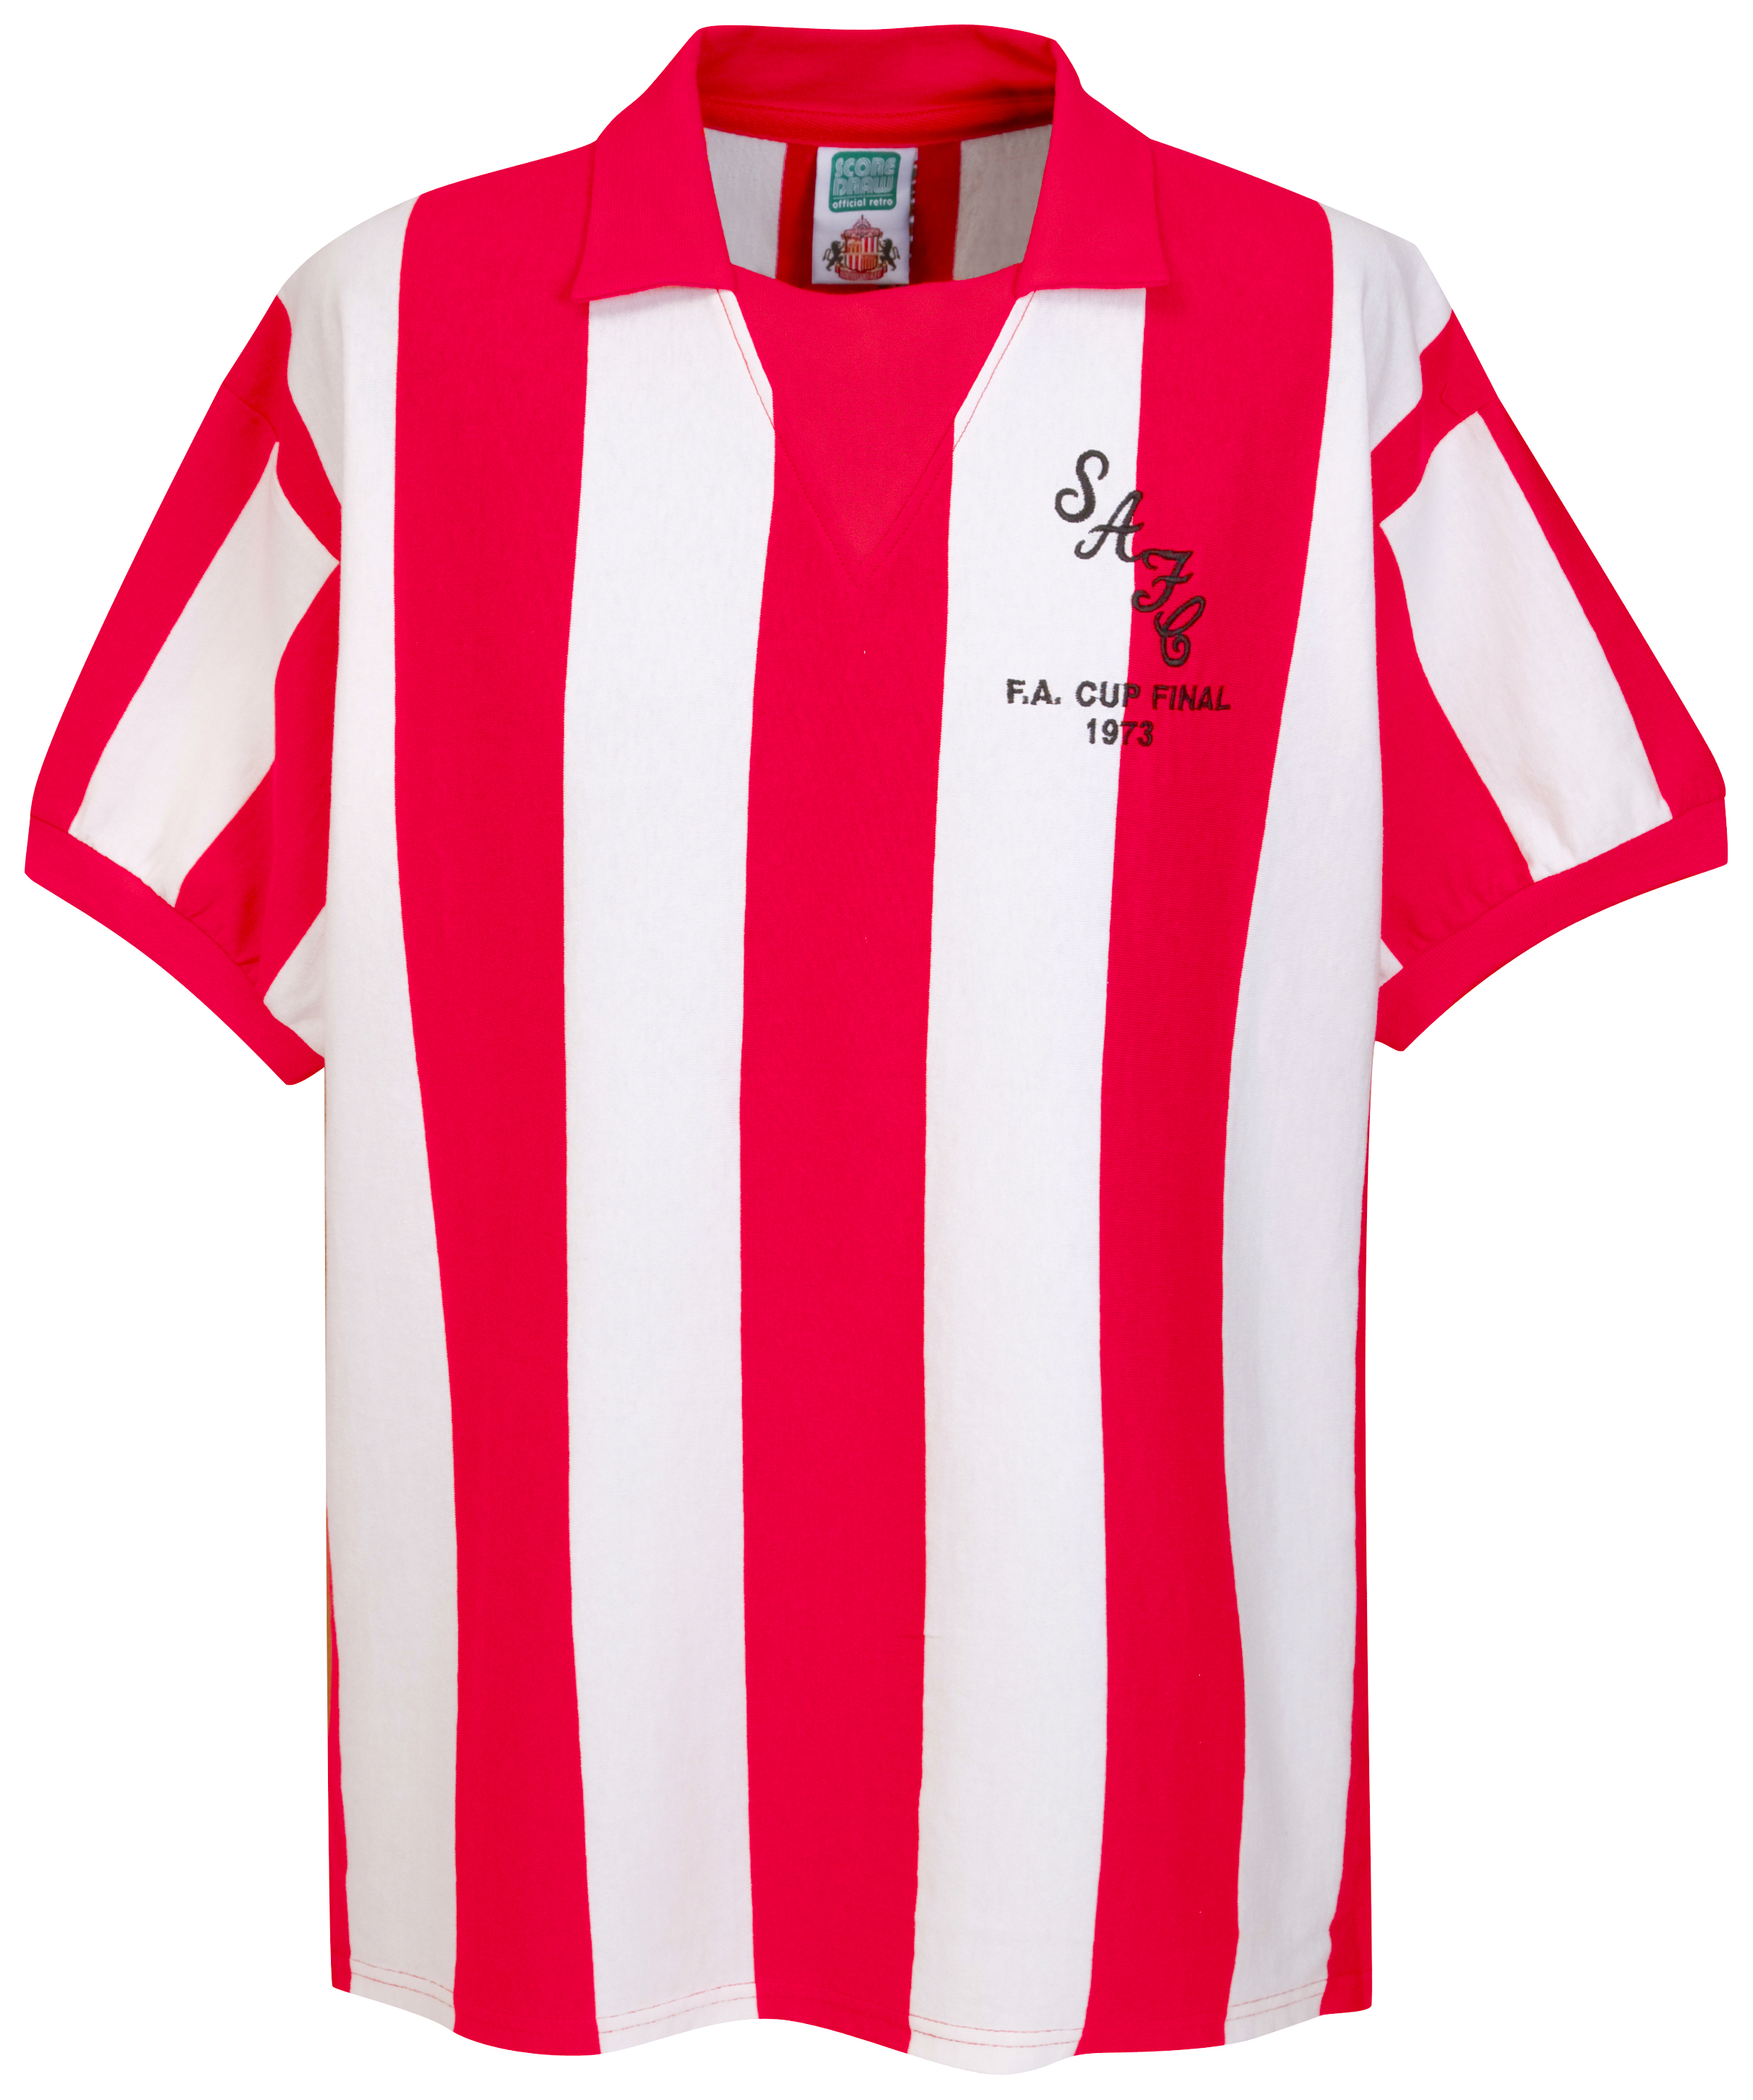 Sunderland 1973 FA Cup Final Shirt